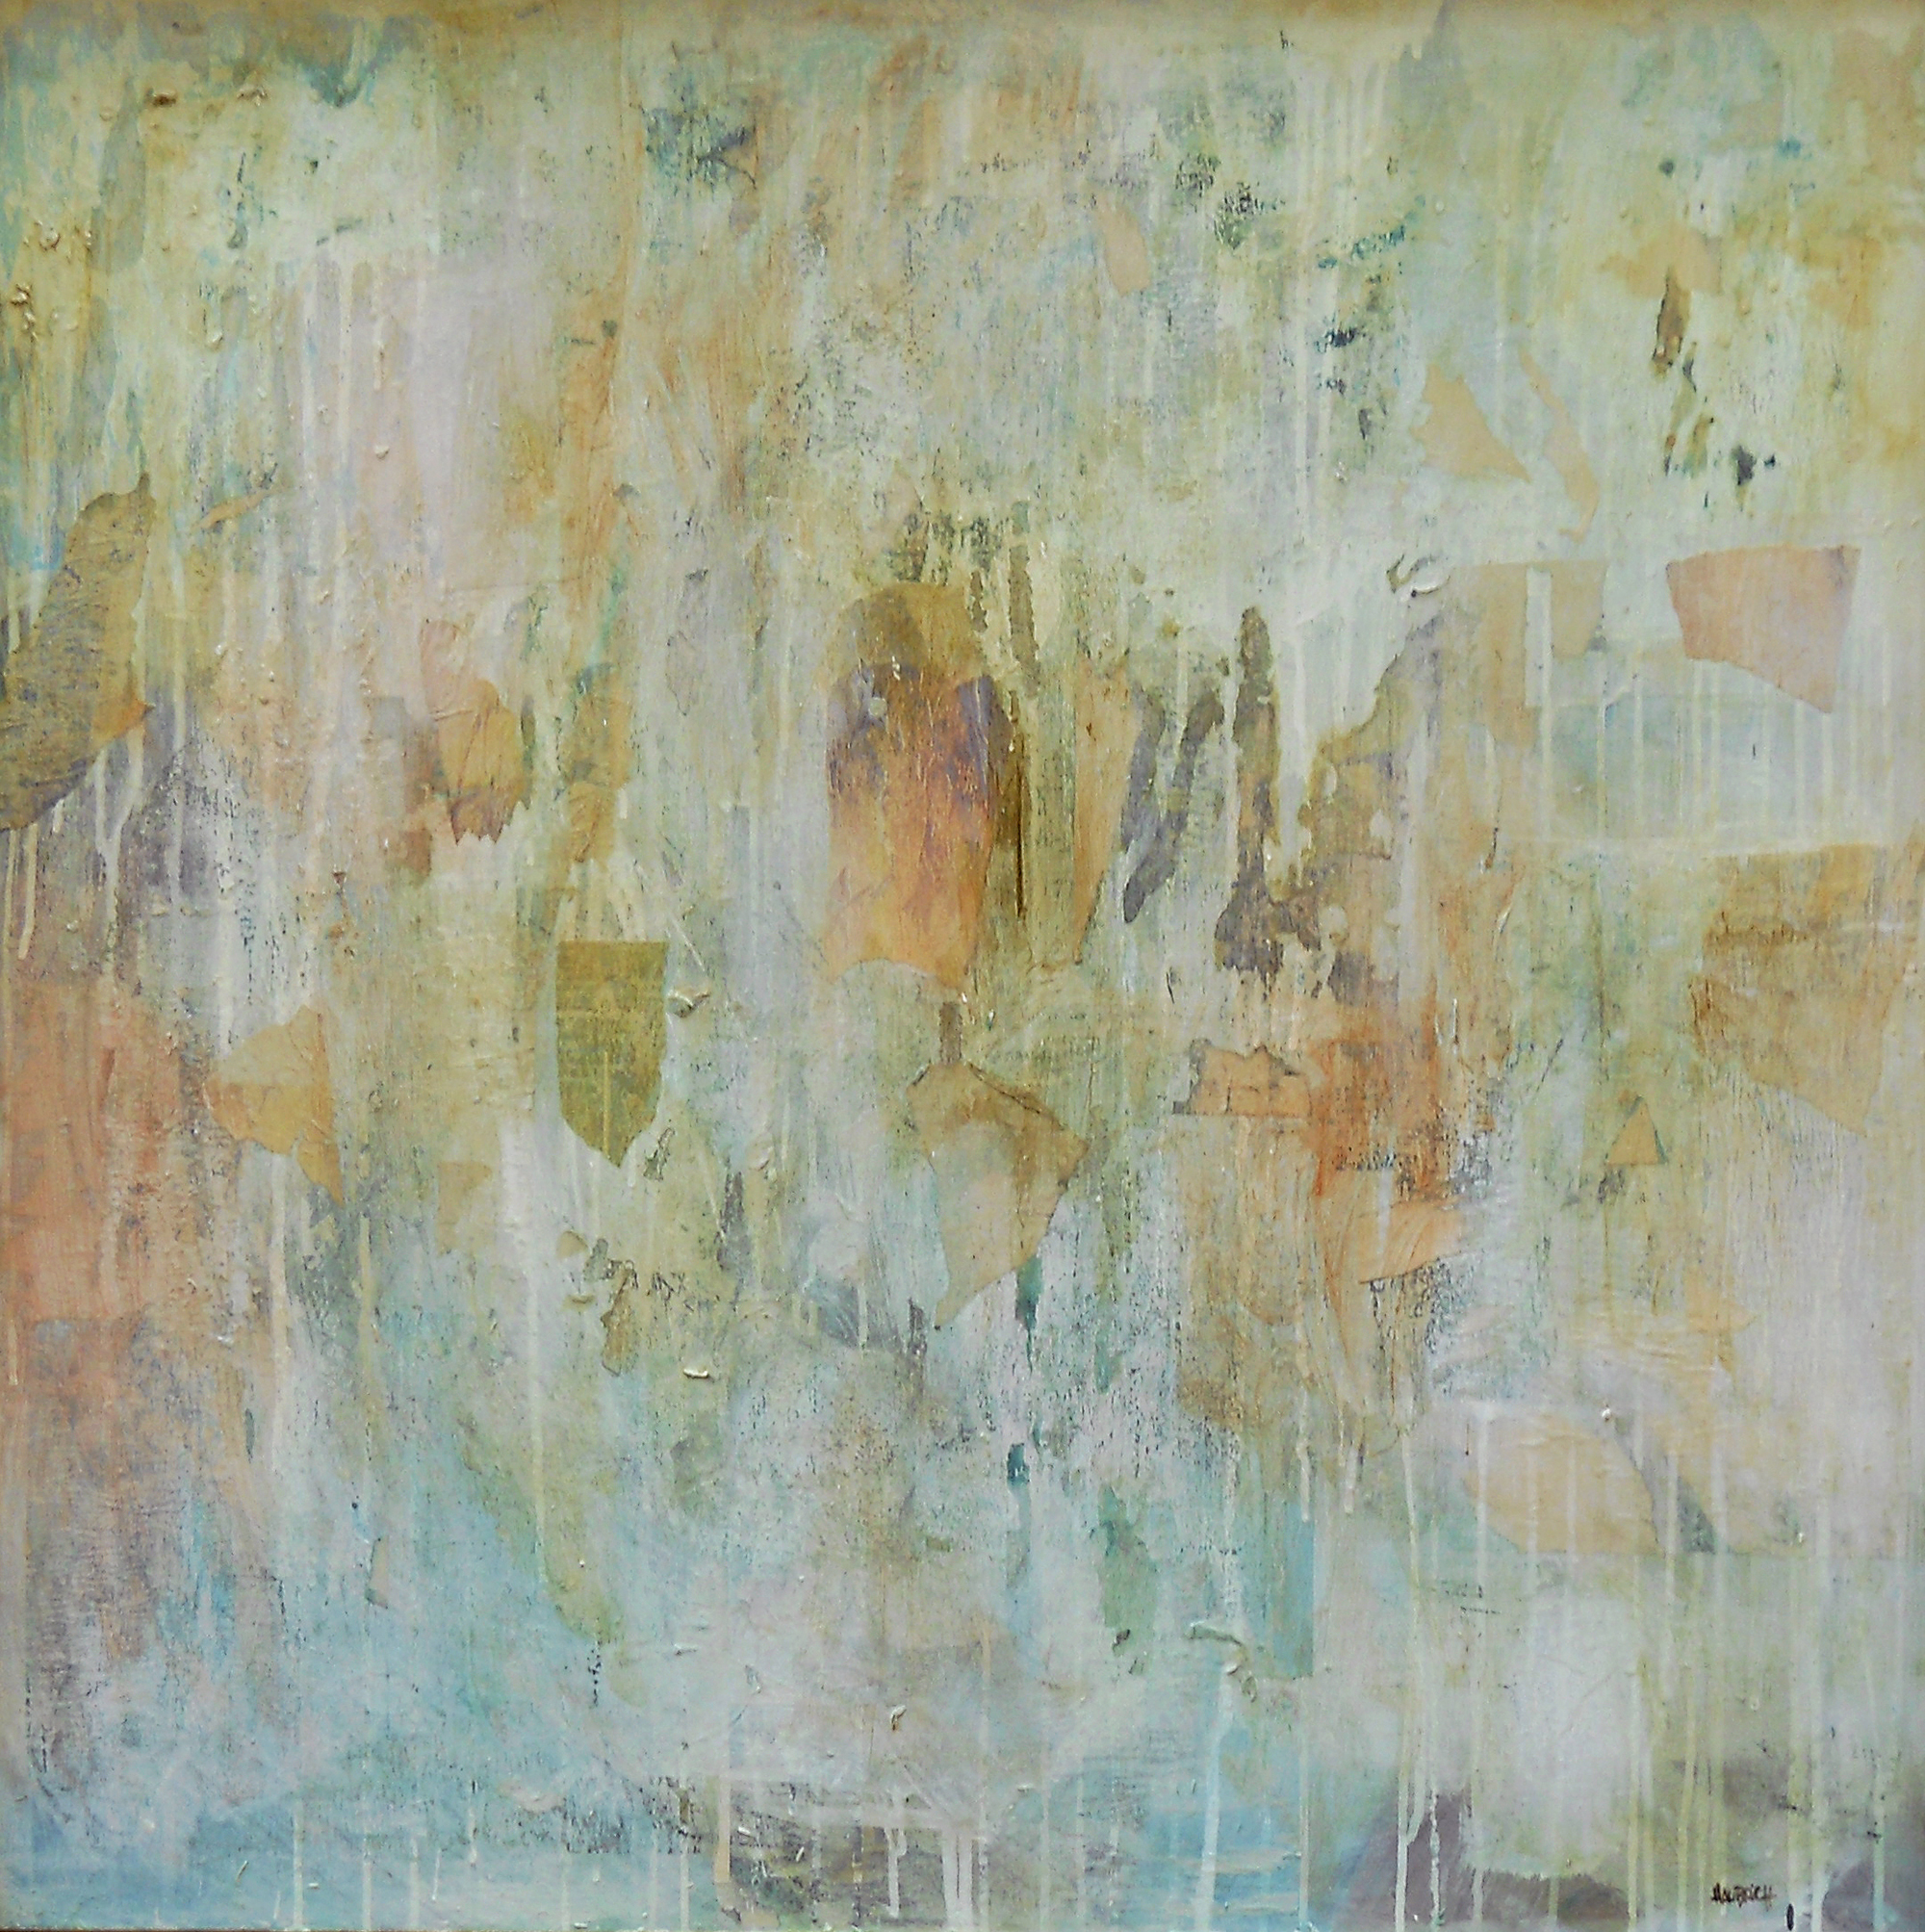 Printemps, 2005, mixed media on canvas, 32 x 32 in, $3,000